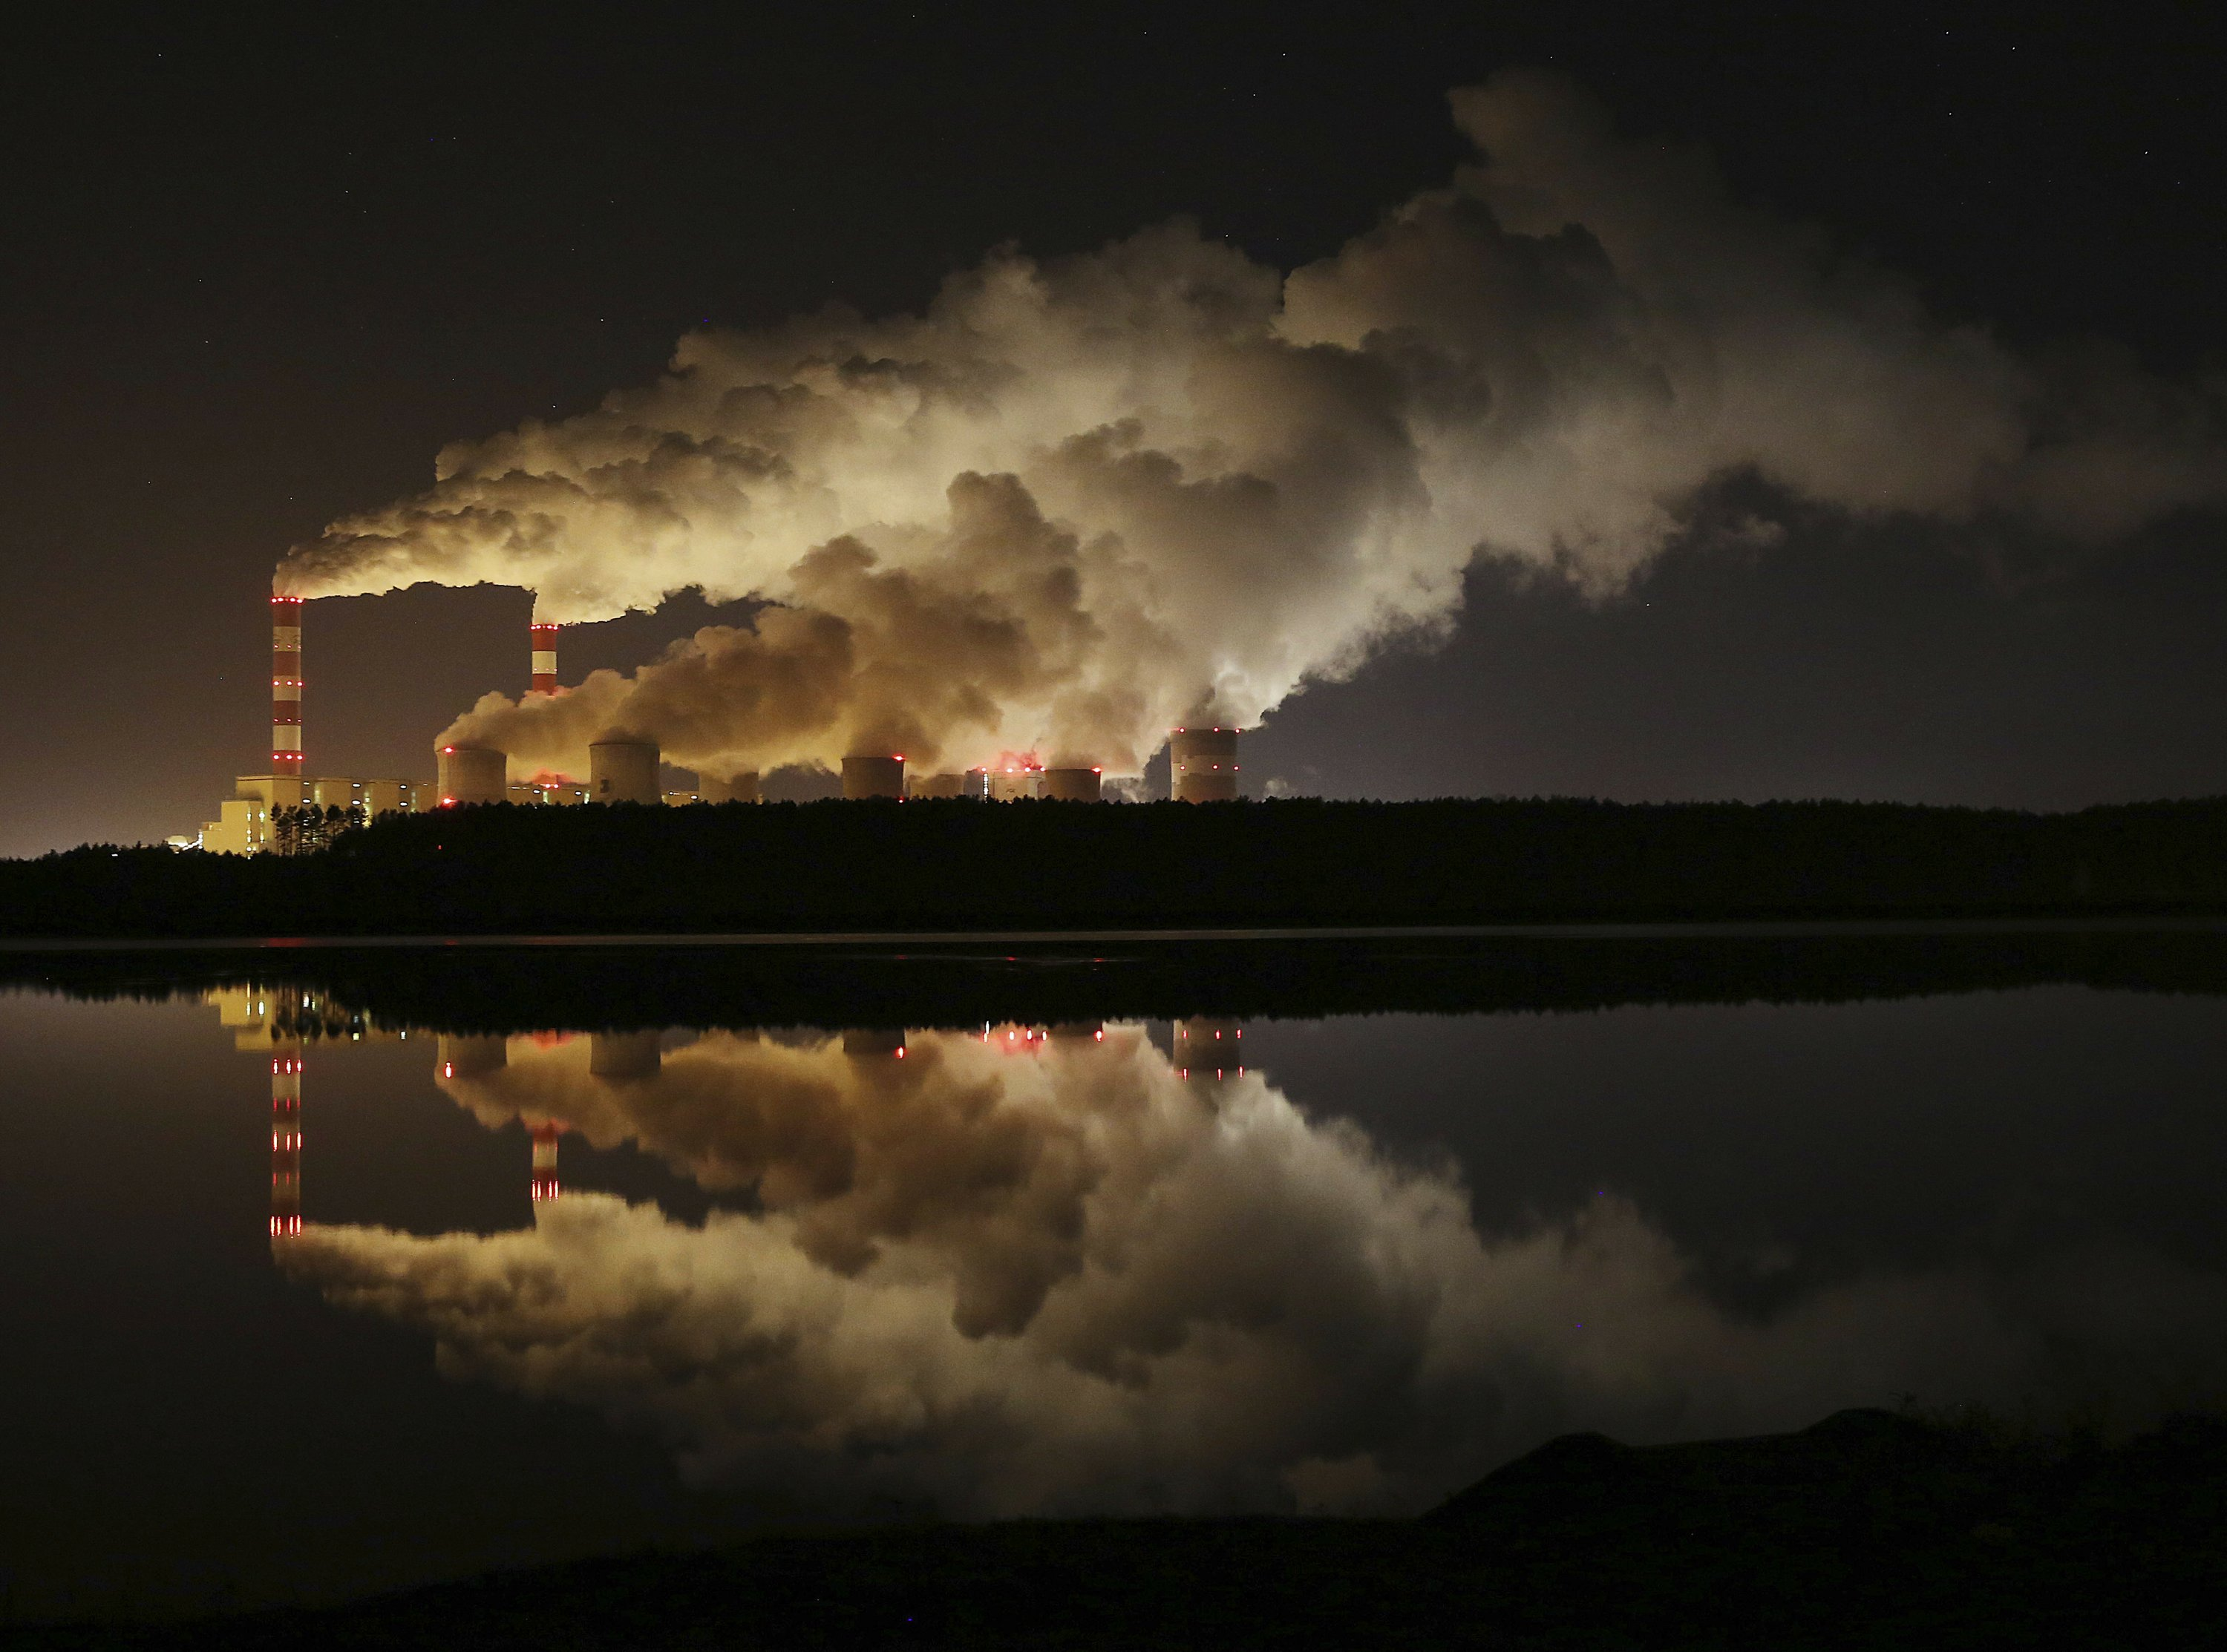 Report: EU greenhouse gas emissions down 24% since 1990